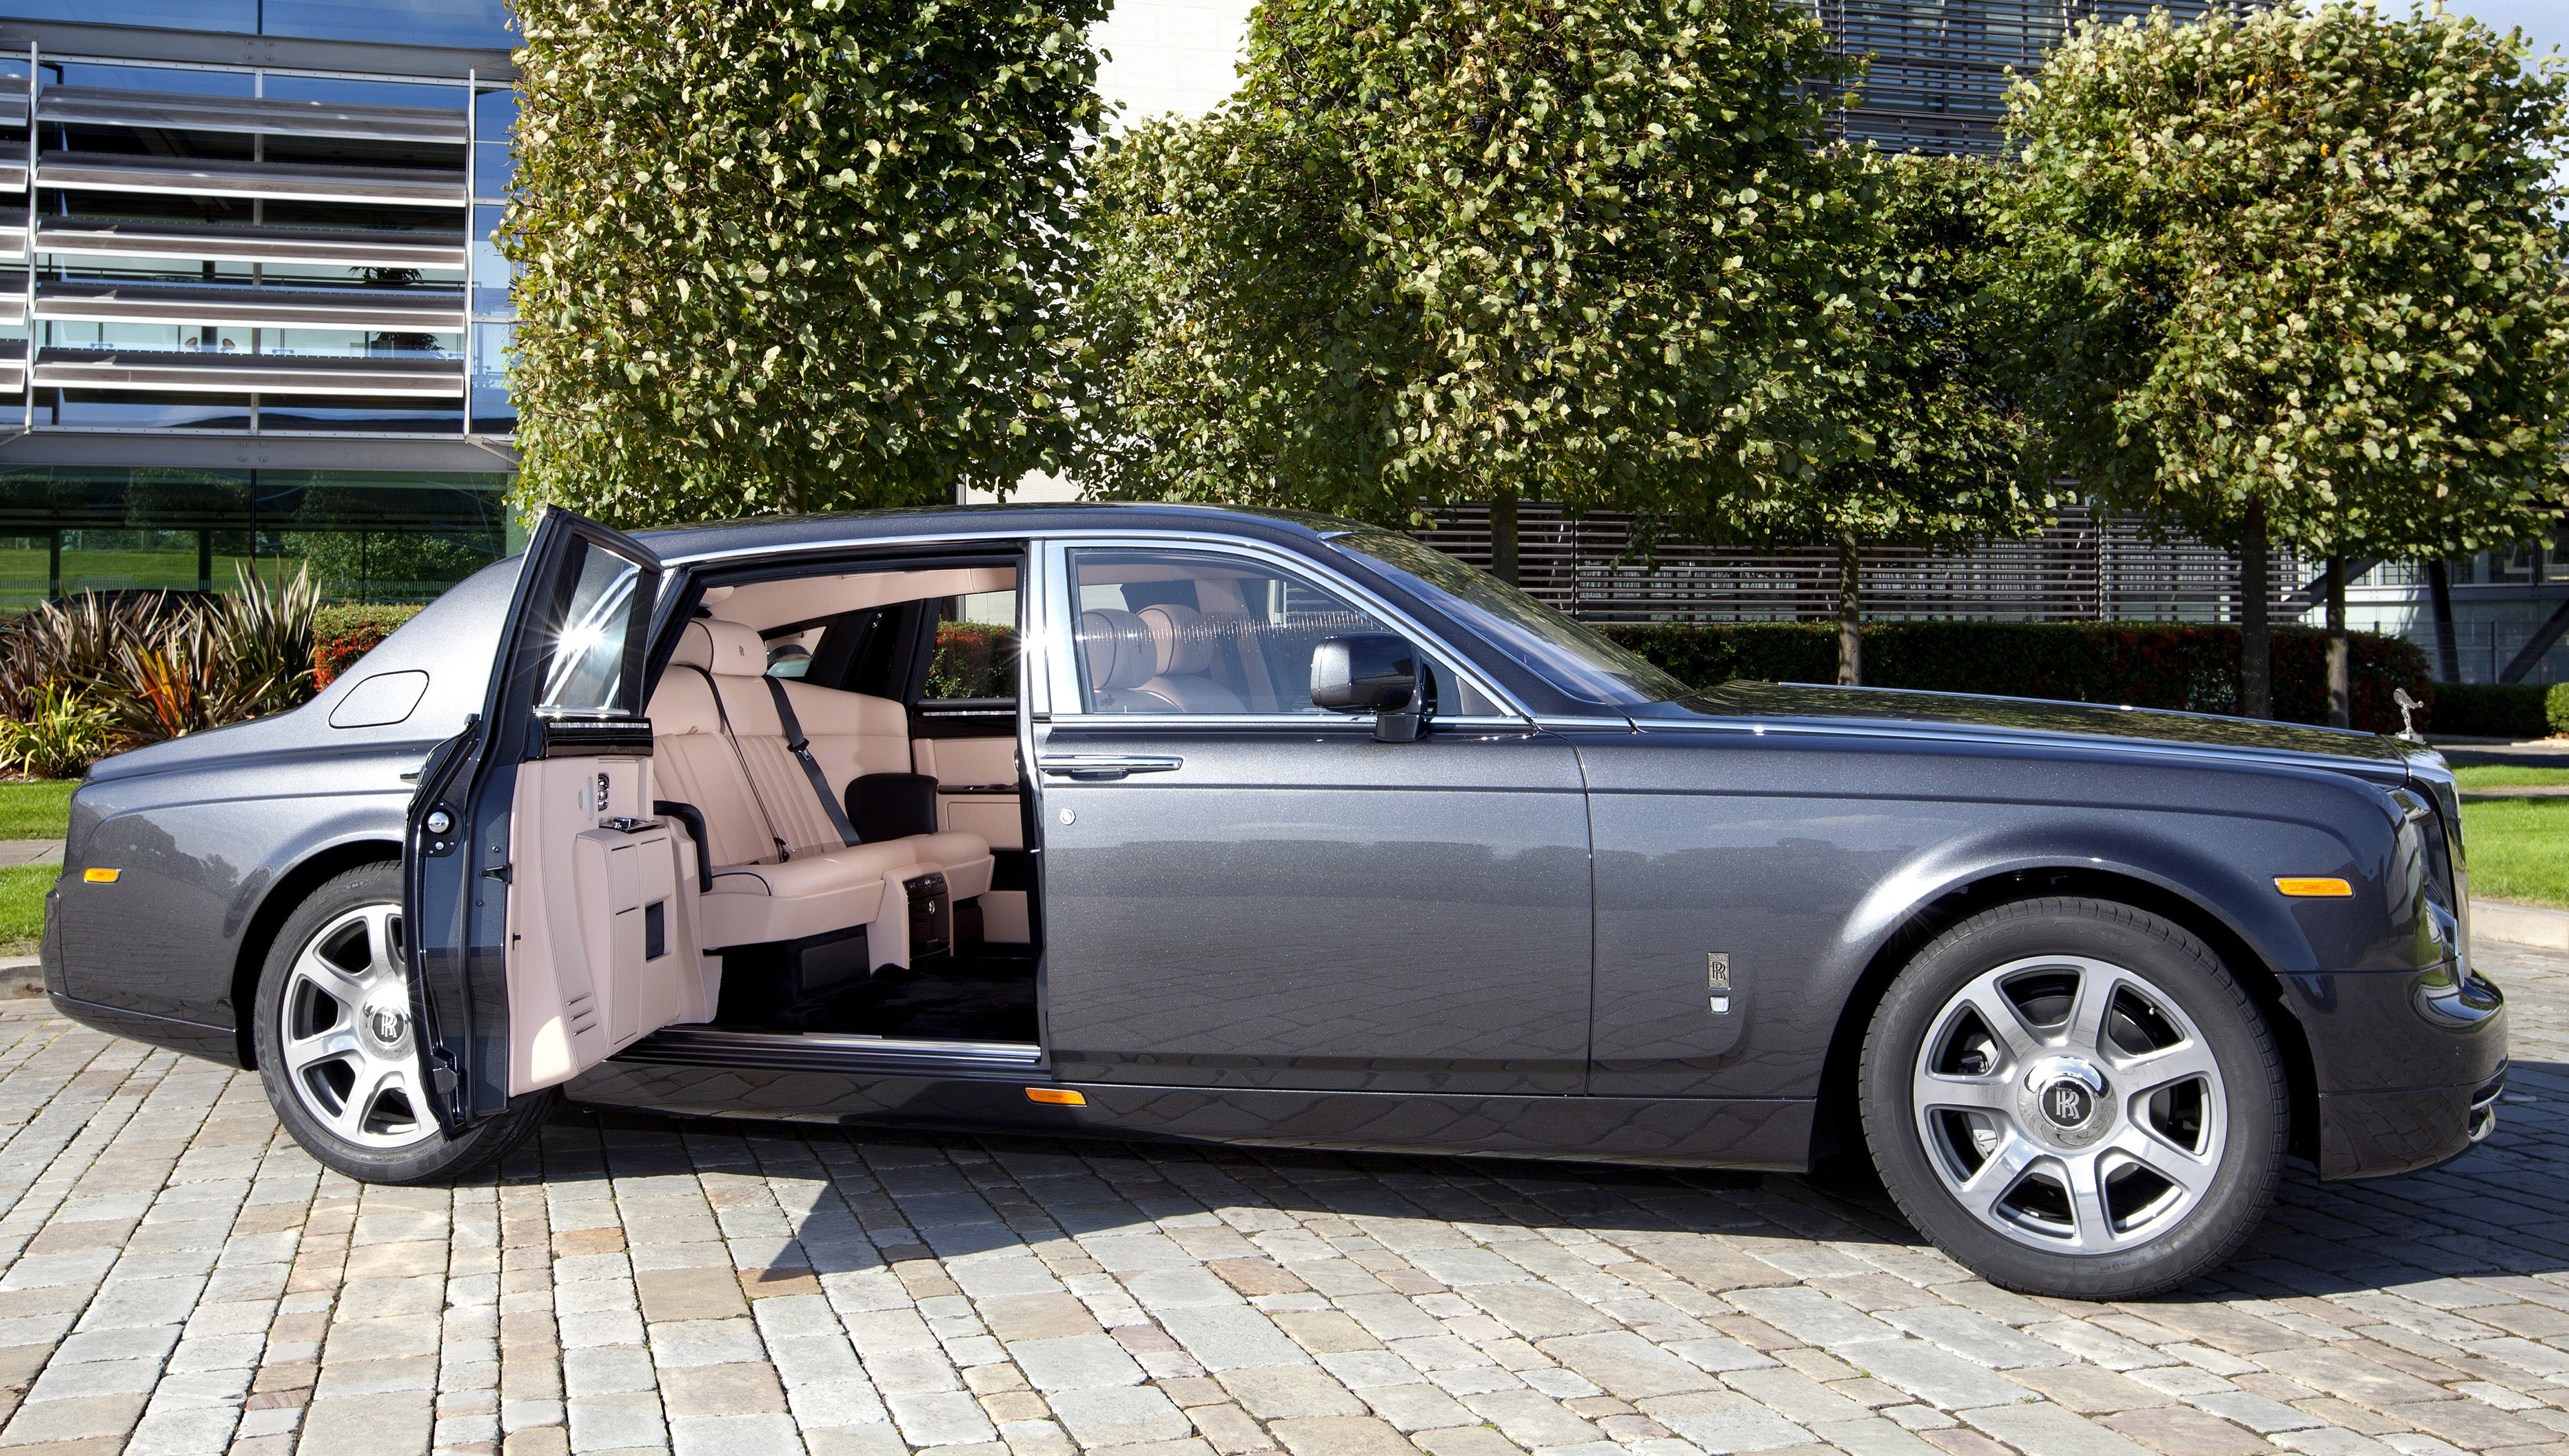 2011 Rolls Royce Phantom Review Ratings Specs Prices And Photos The Car Connection